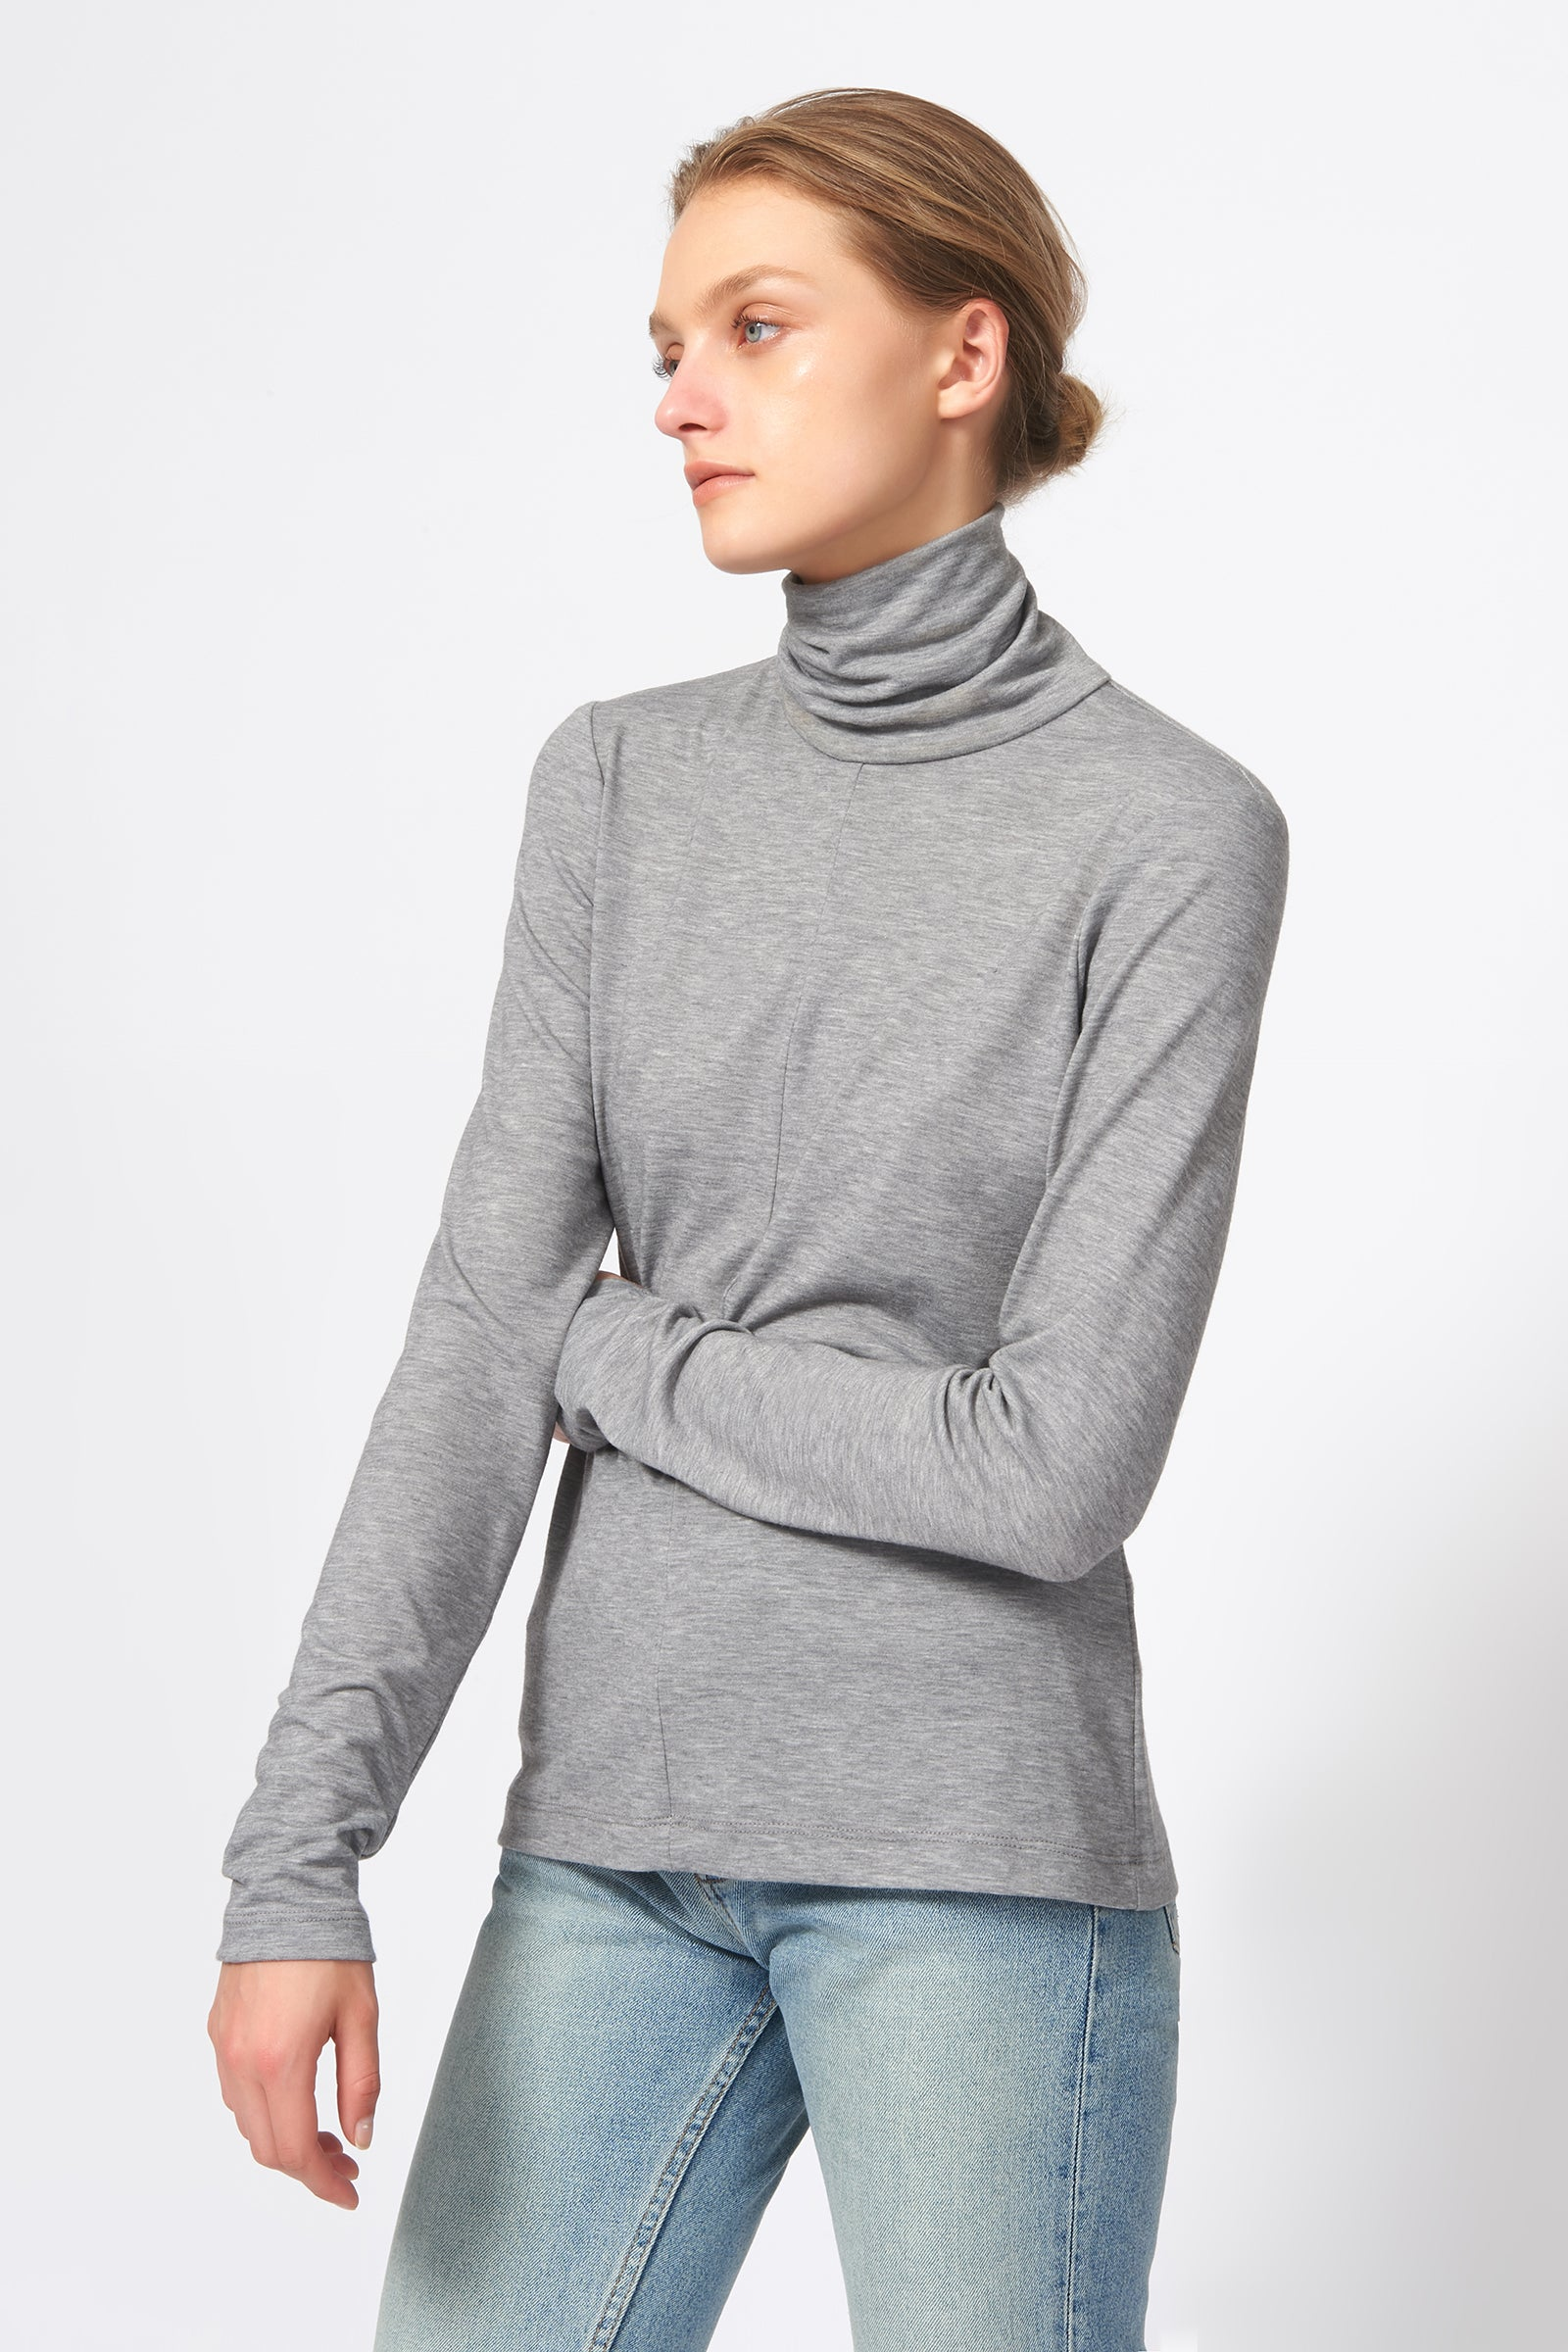 Kal Rieman Seamed Turtleneck in Grey on Model Front Side View